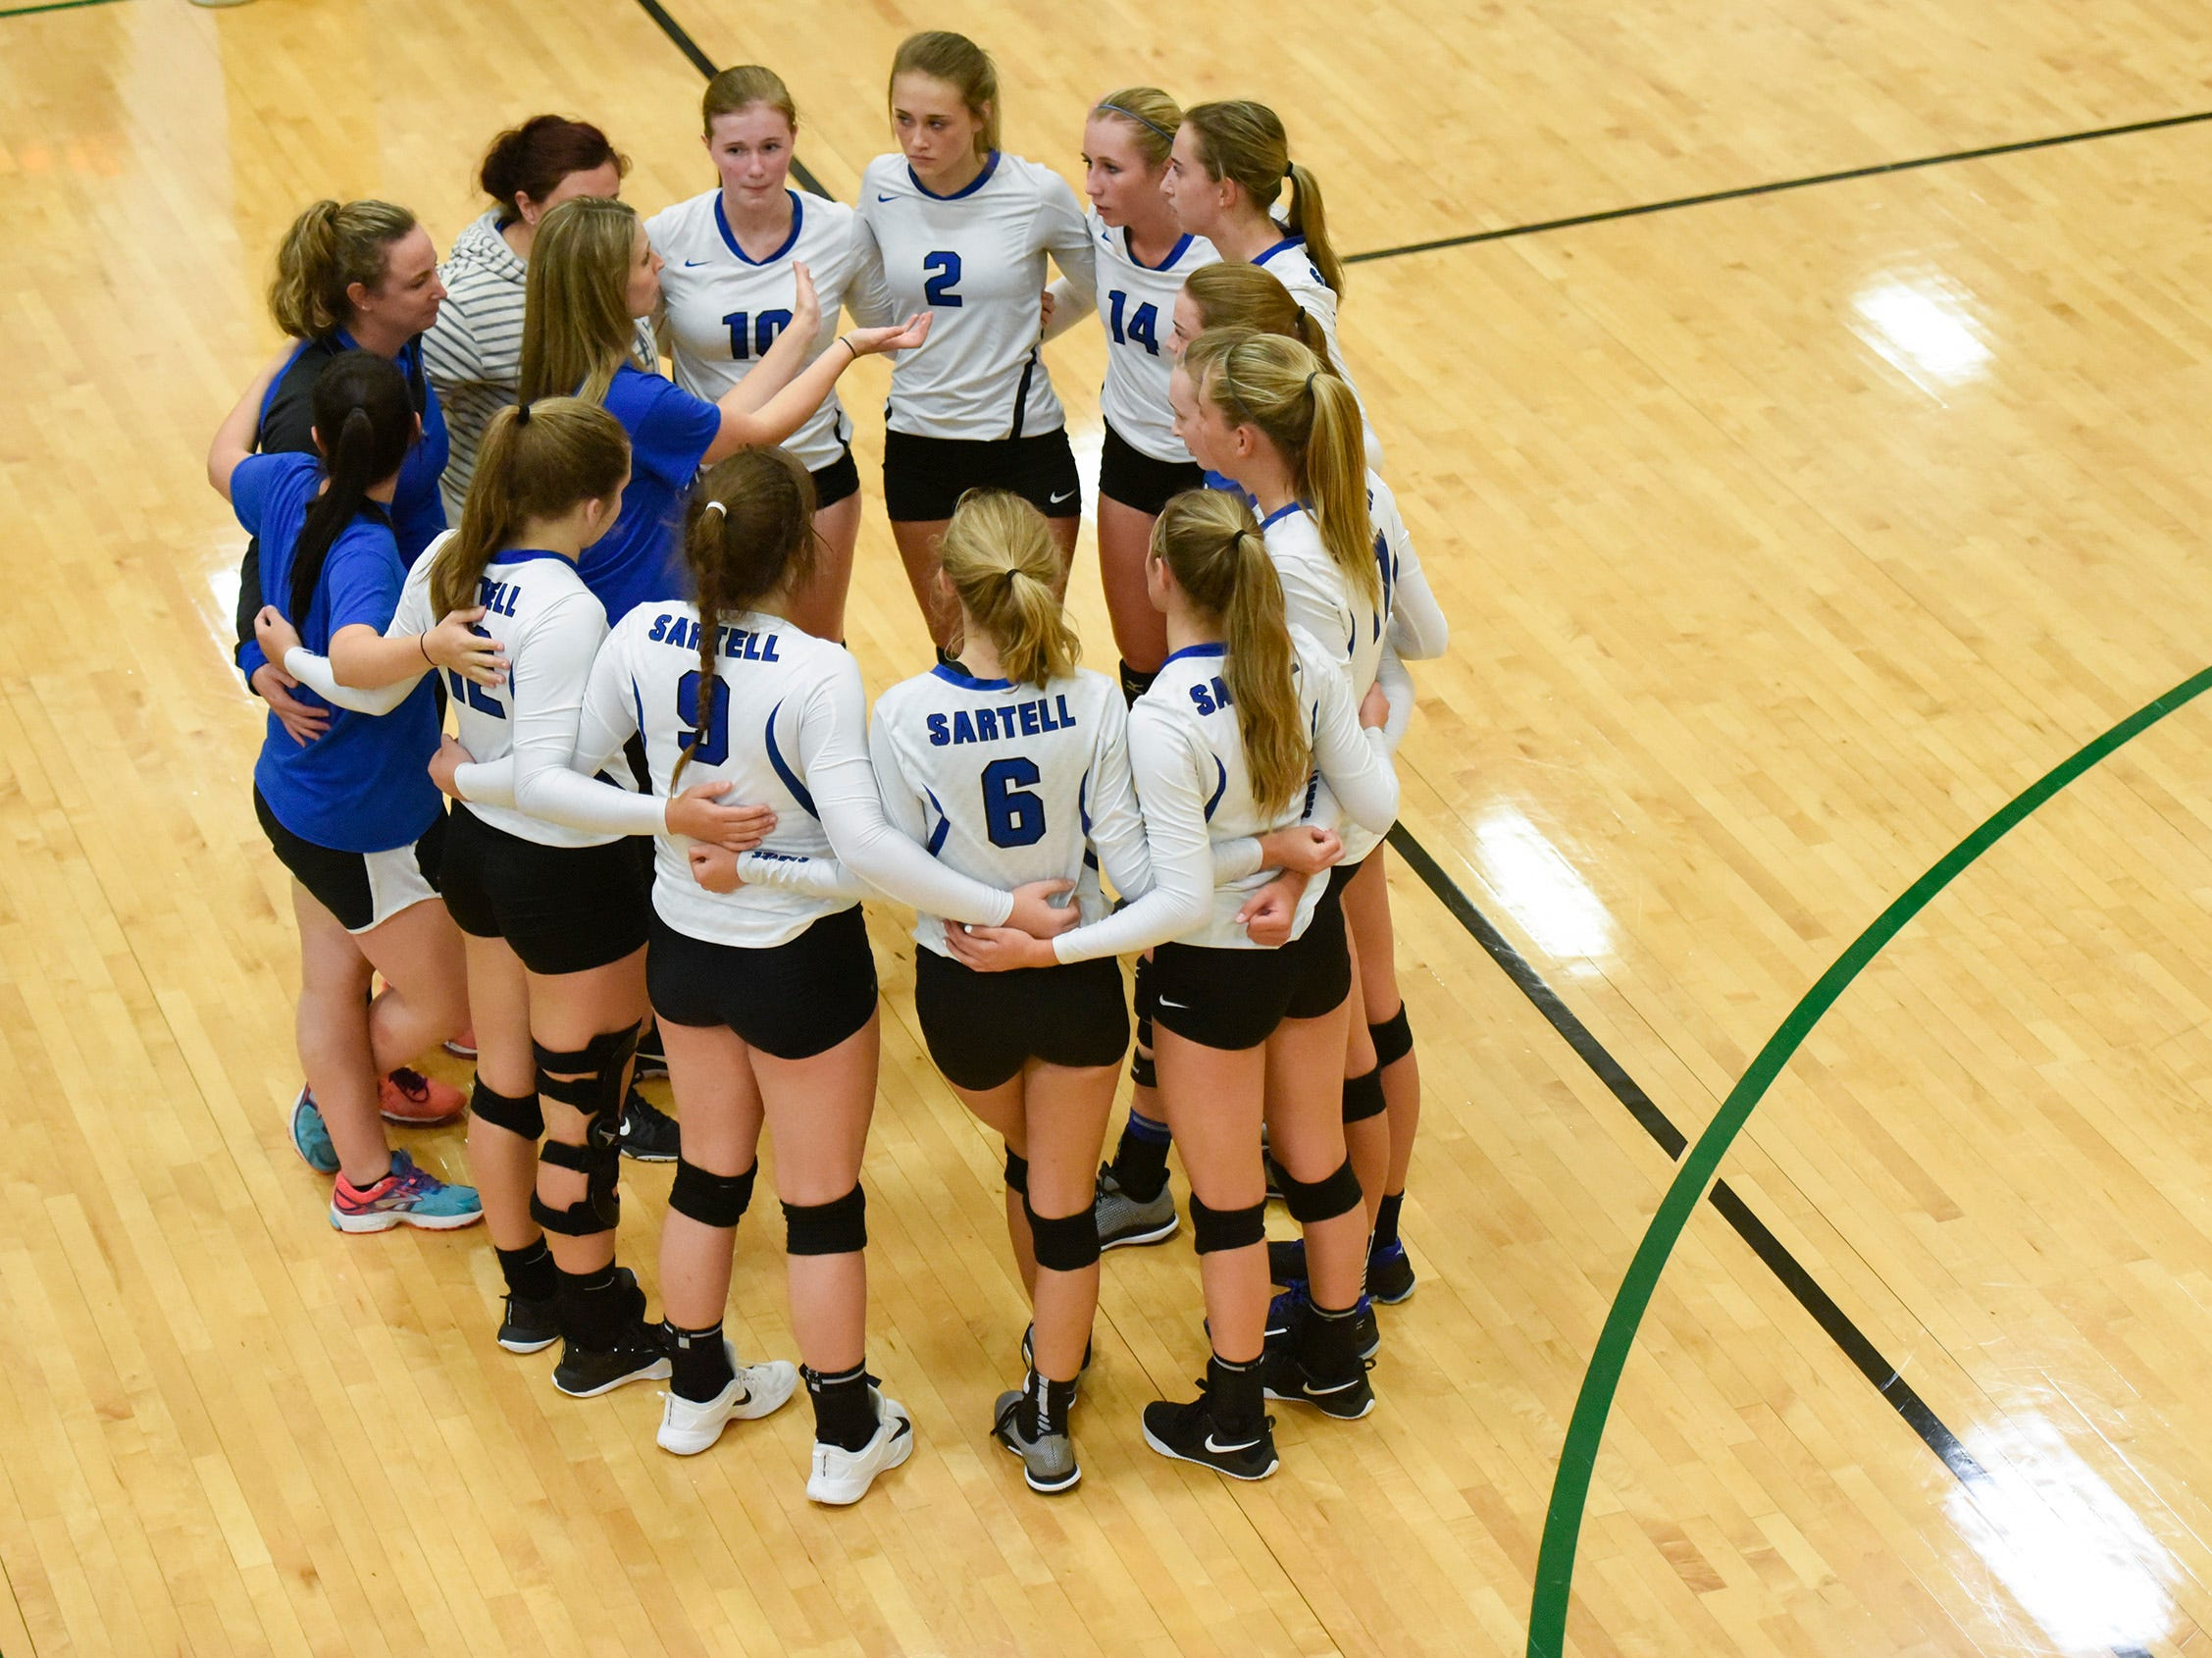 Sartell coaches and players talk between games.